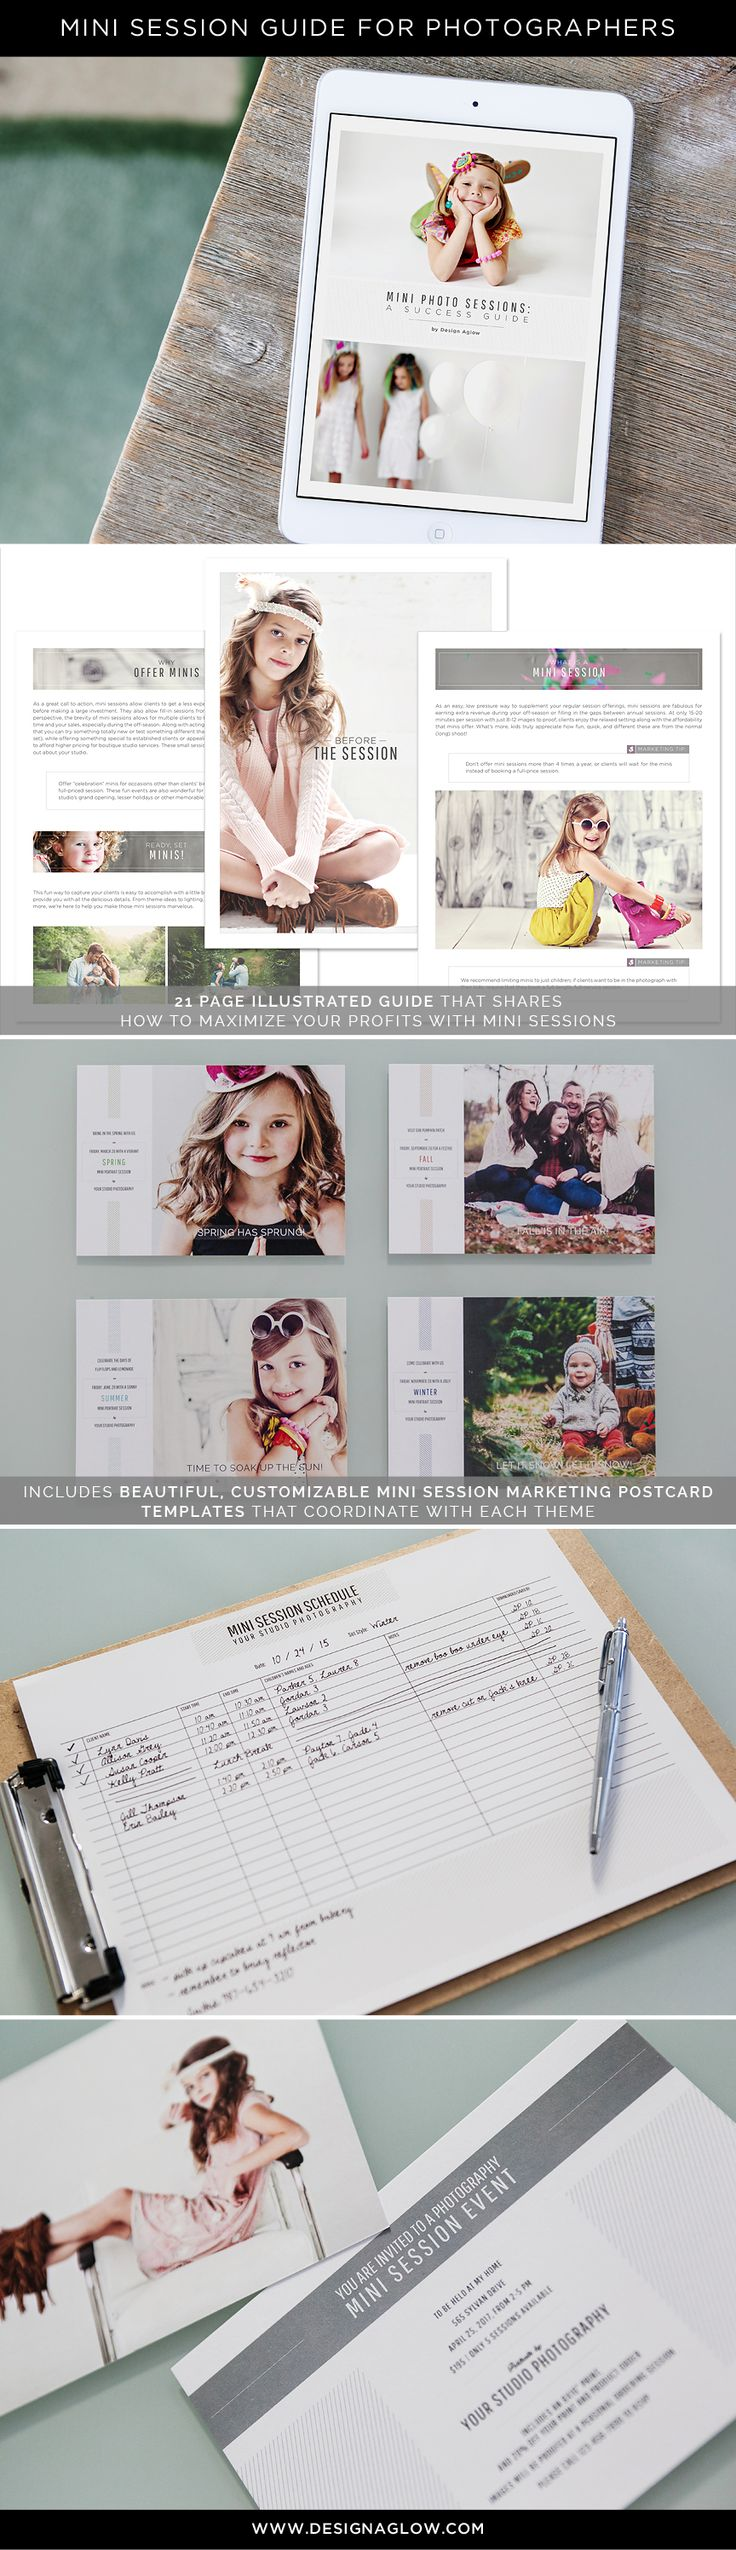 Ideal for building buzz, bringing in new clients, and generating business during slower times of the year, our comprehensive Mini Session package will get you started as soon as you download! #designaglow